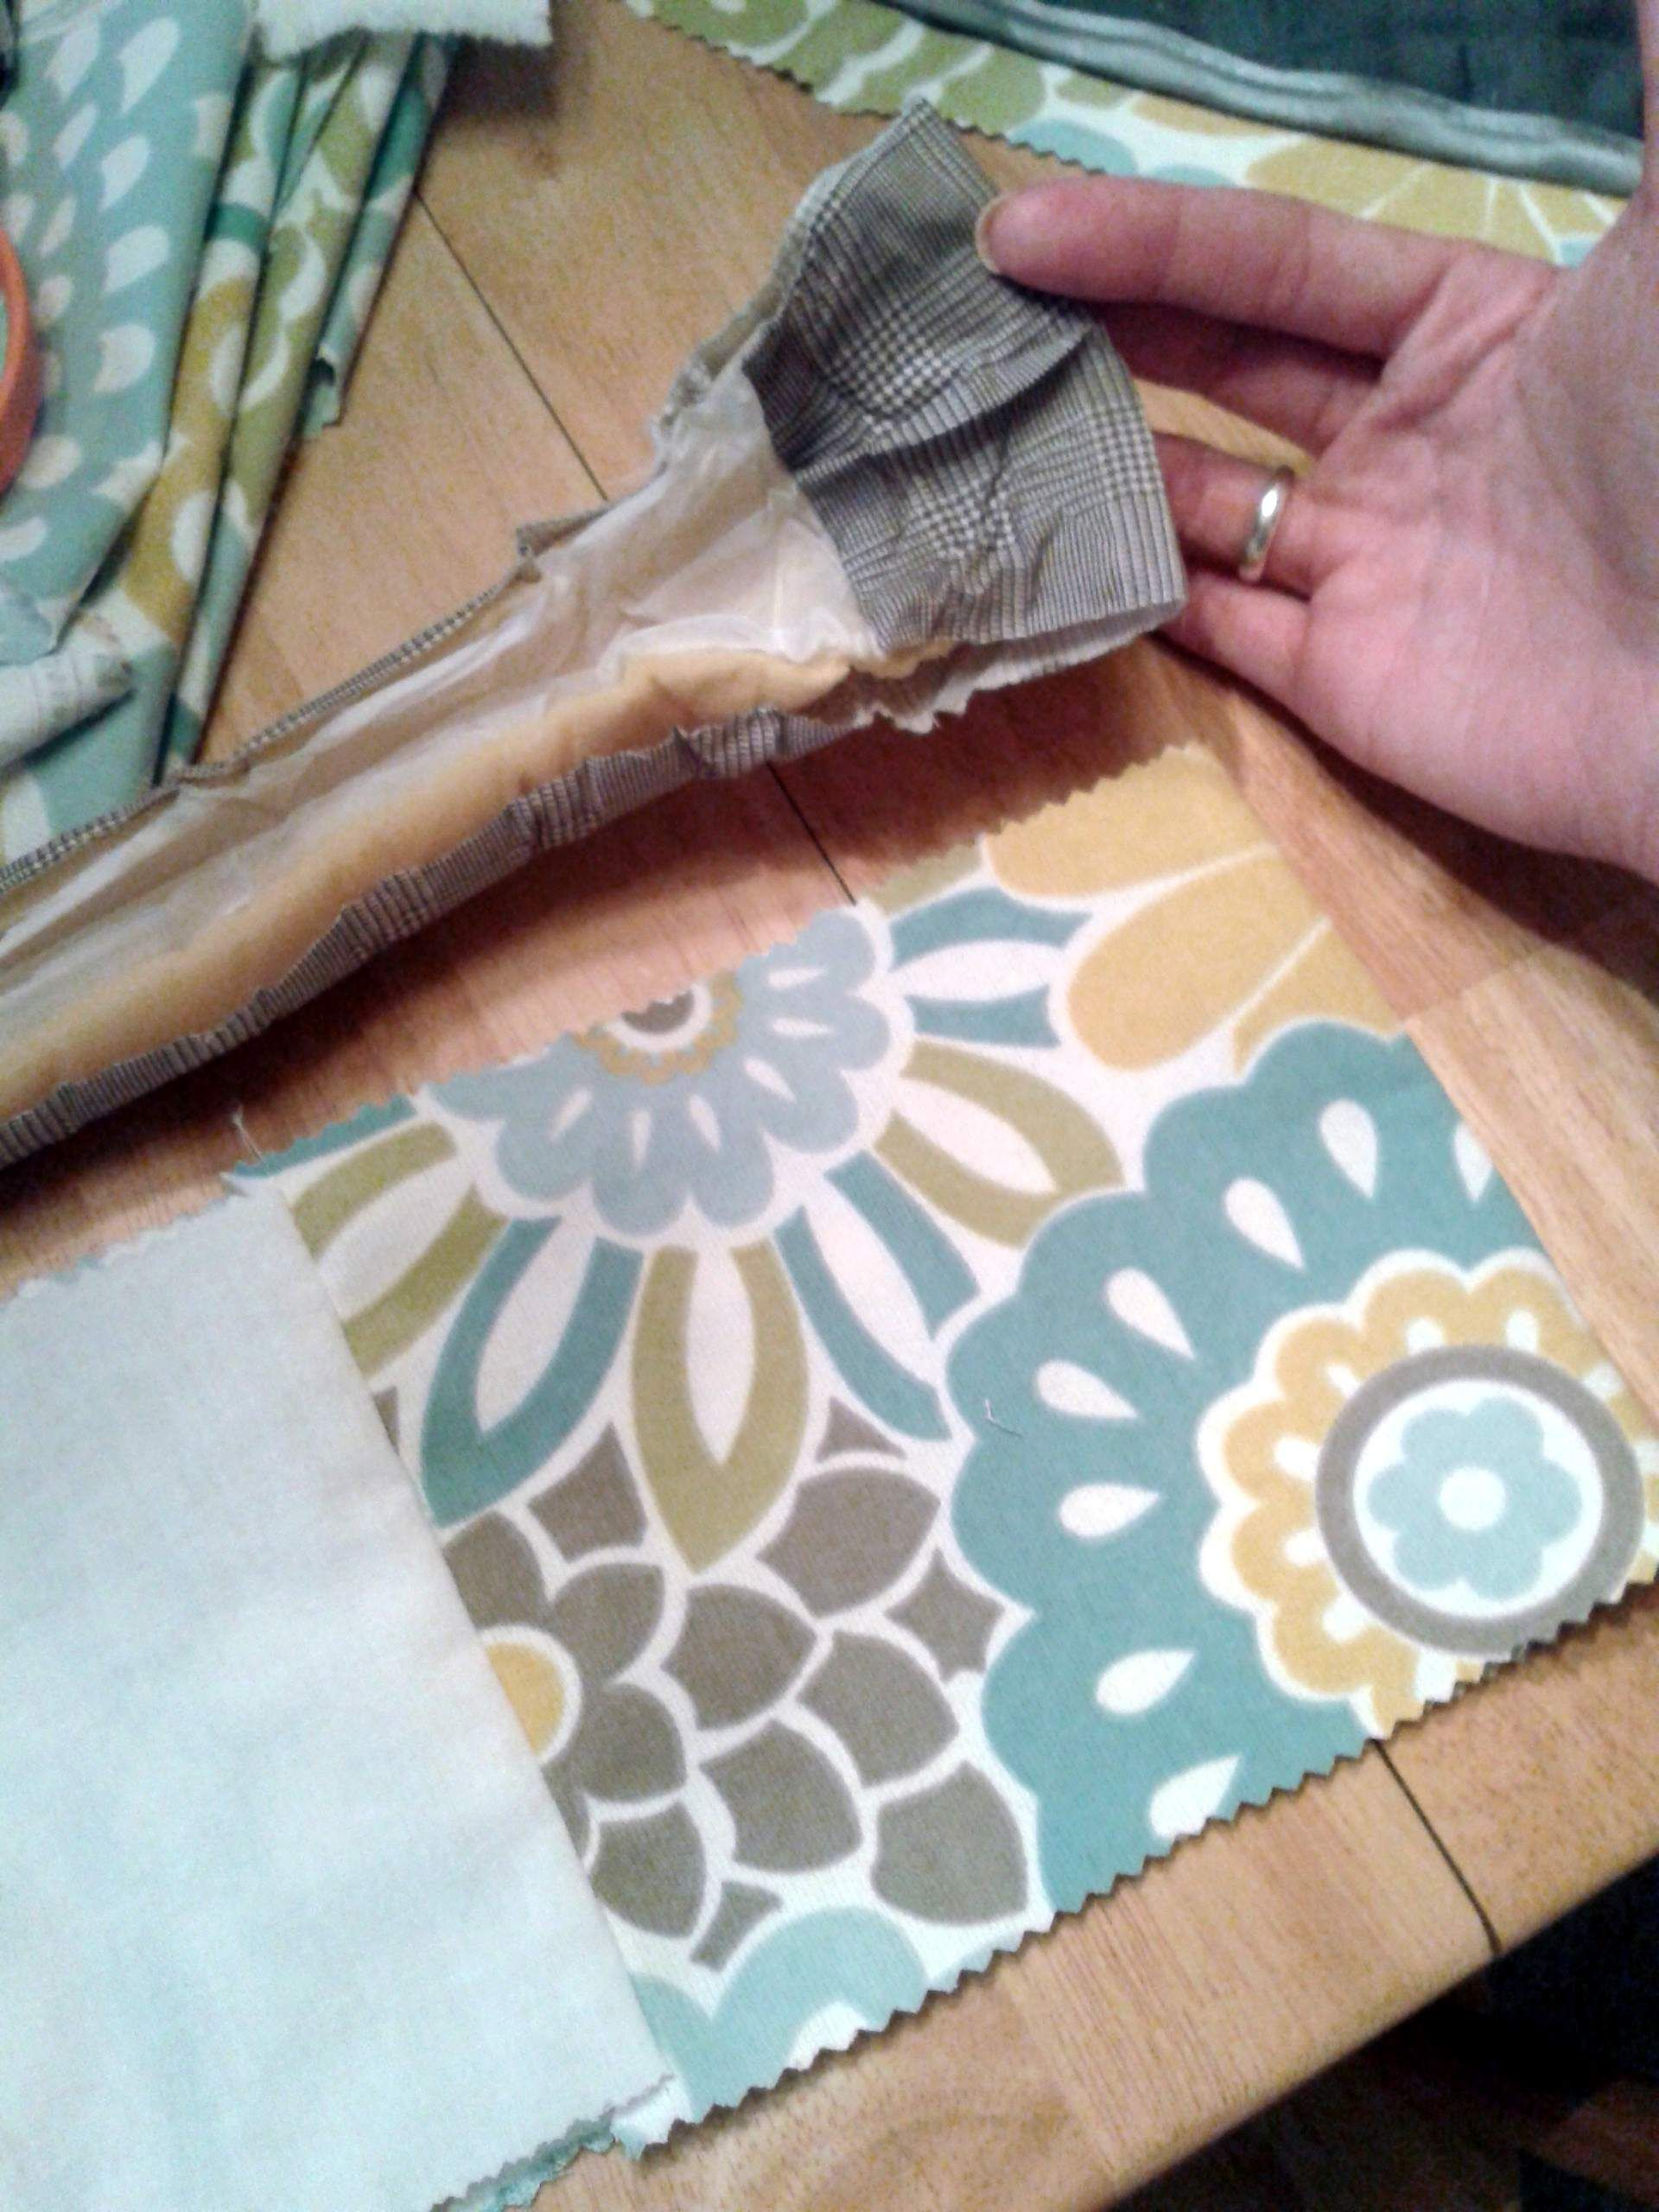 how to make a new stroller canopy u0026 cover tutorial with LOTS of step by & how to make a new stroller canopy u0026 cover tutorial with LOTS of ...